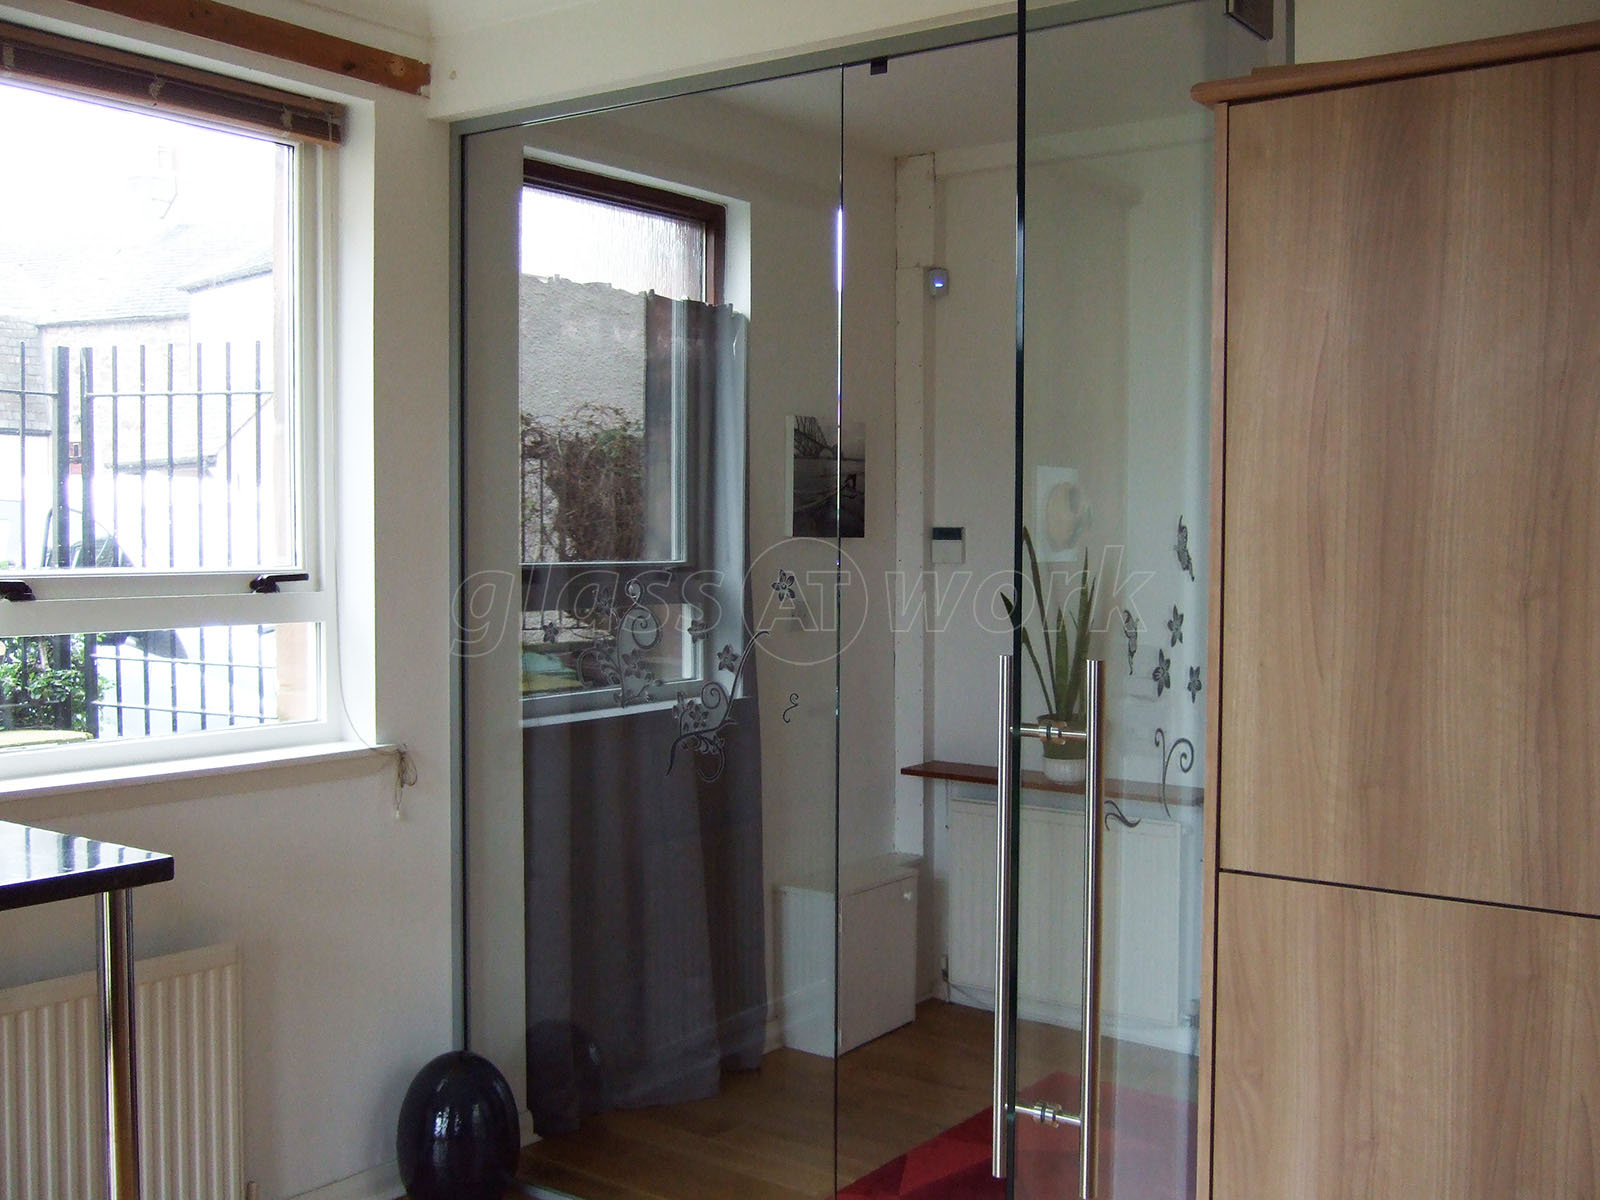 Domestic Project (Musselburgh Scotland) Glass Partition & Glass Partitioning at Domestic Project (Musselburgh Scotland ...